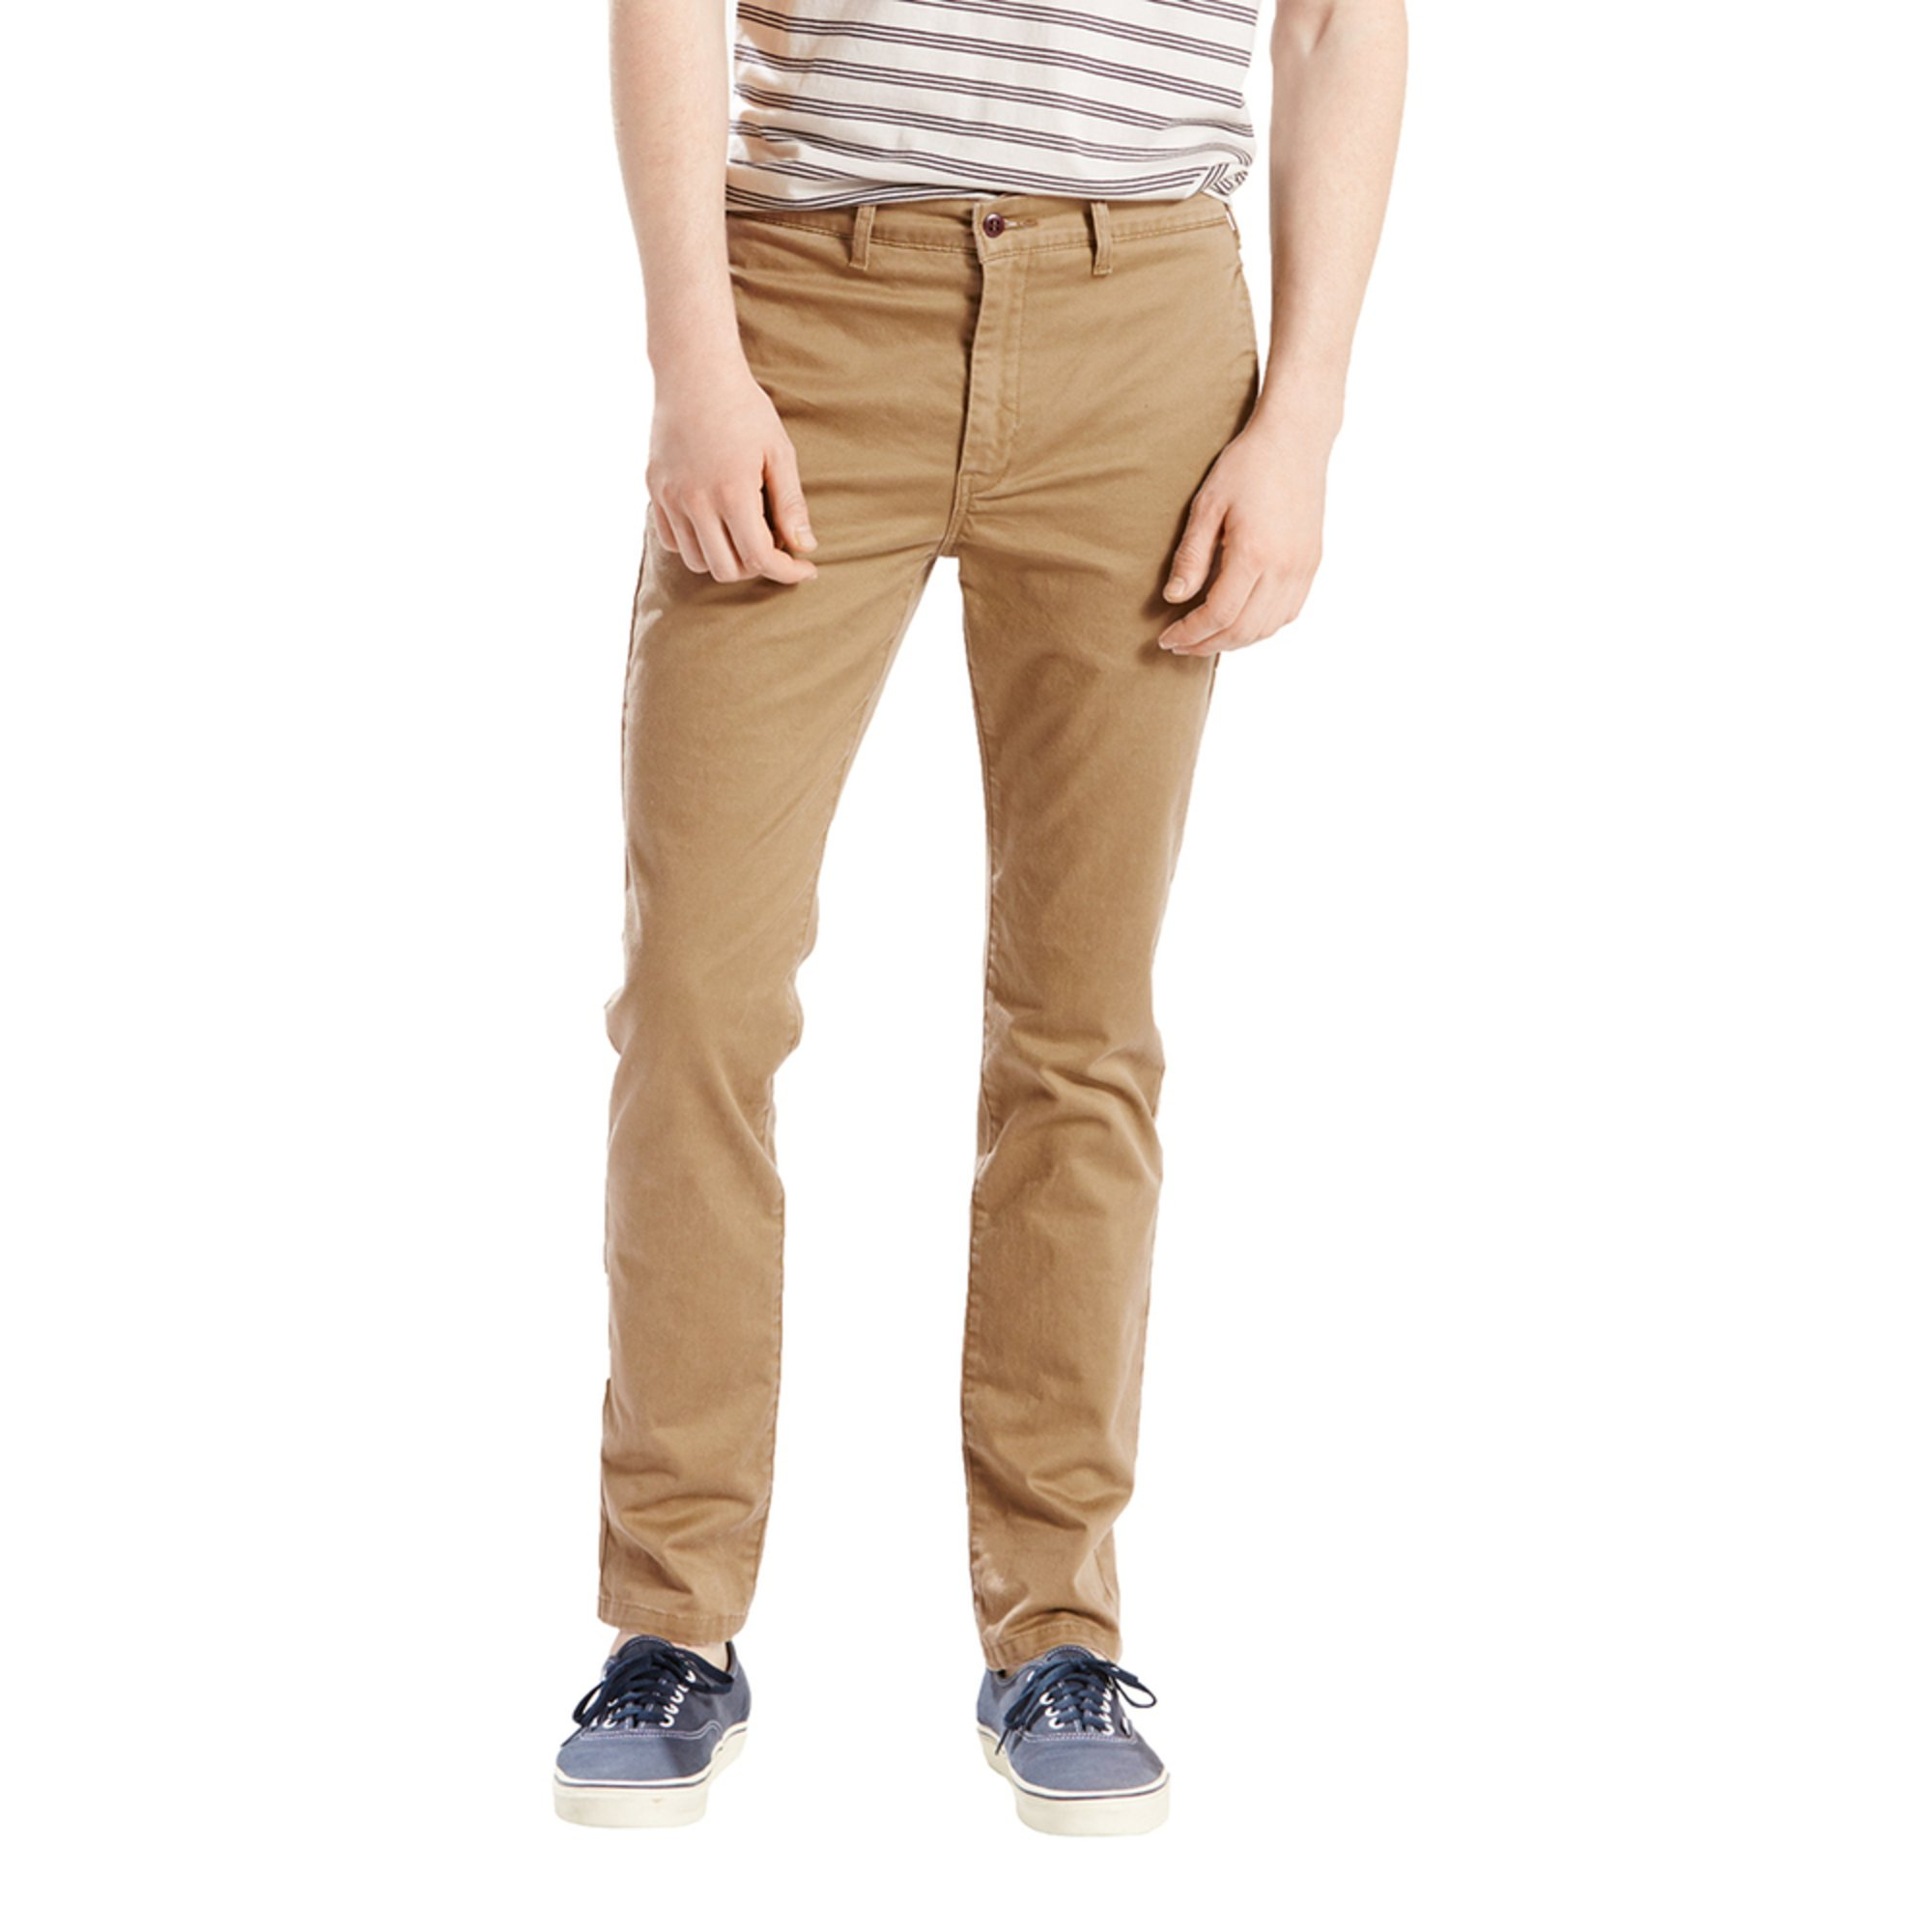 277e182a85a0 Levi s. Levi s Men s 511 Slim Fit Chino Twill Pants